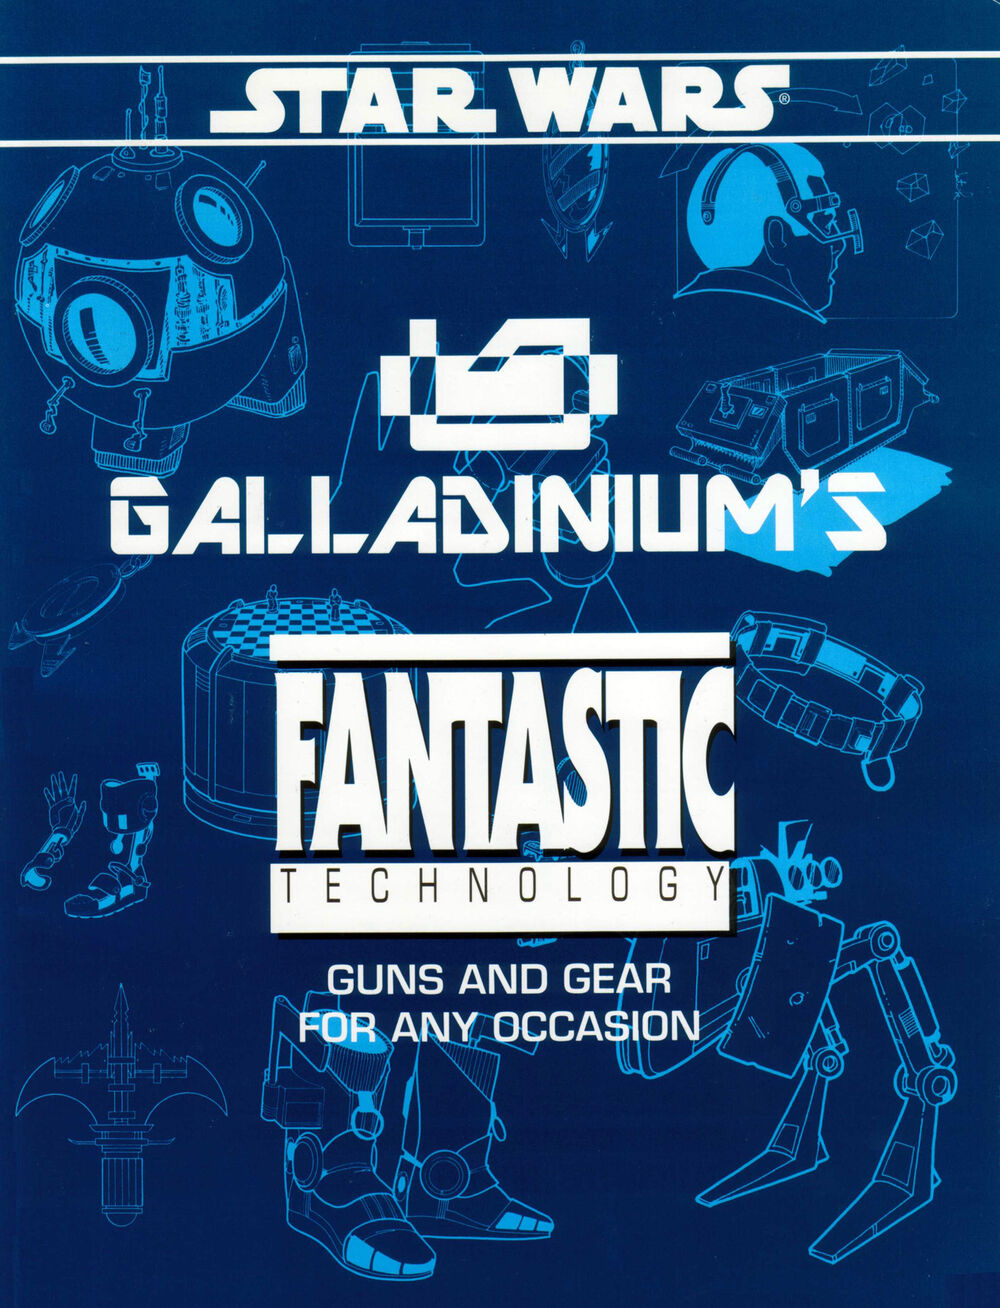 Star Wars: Galladinium's Fantastic Technology